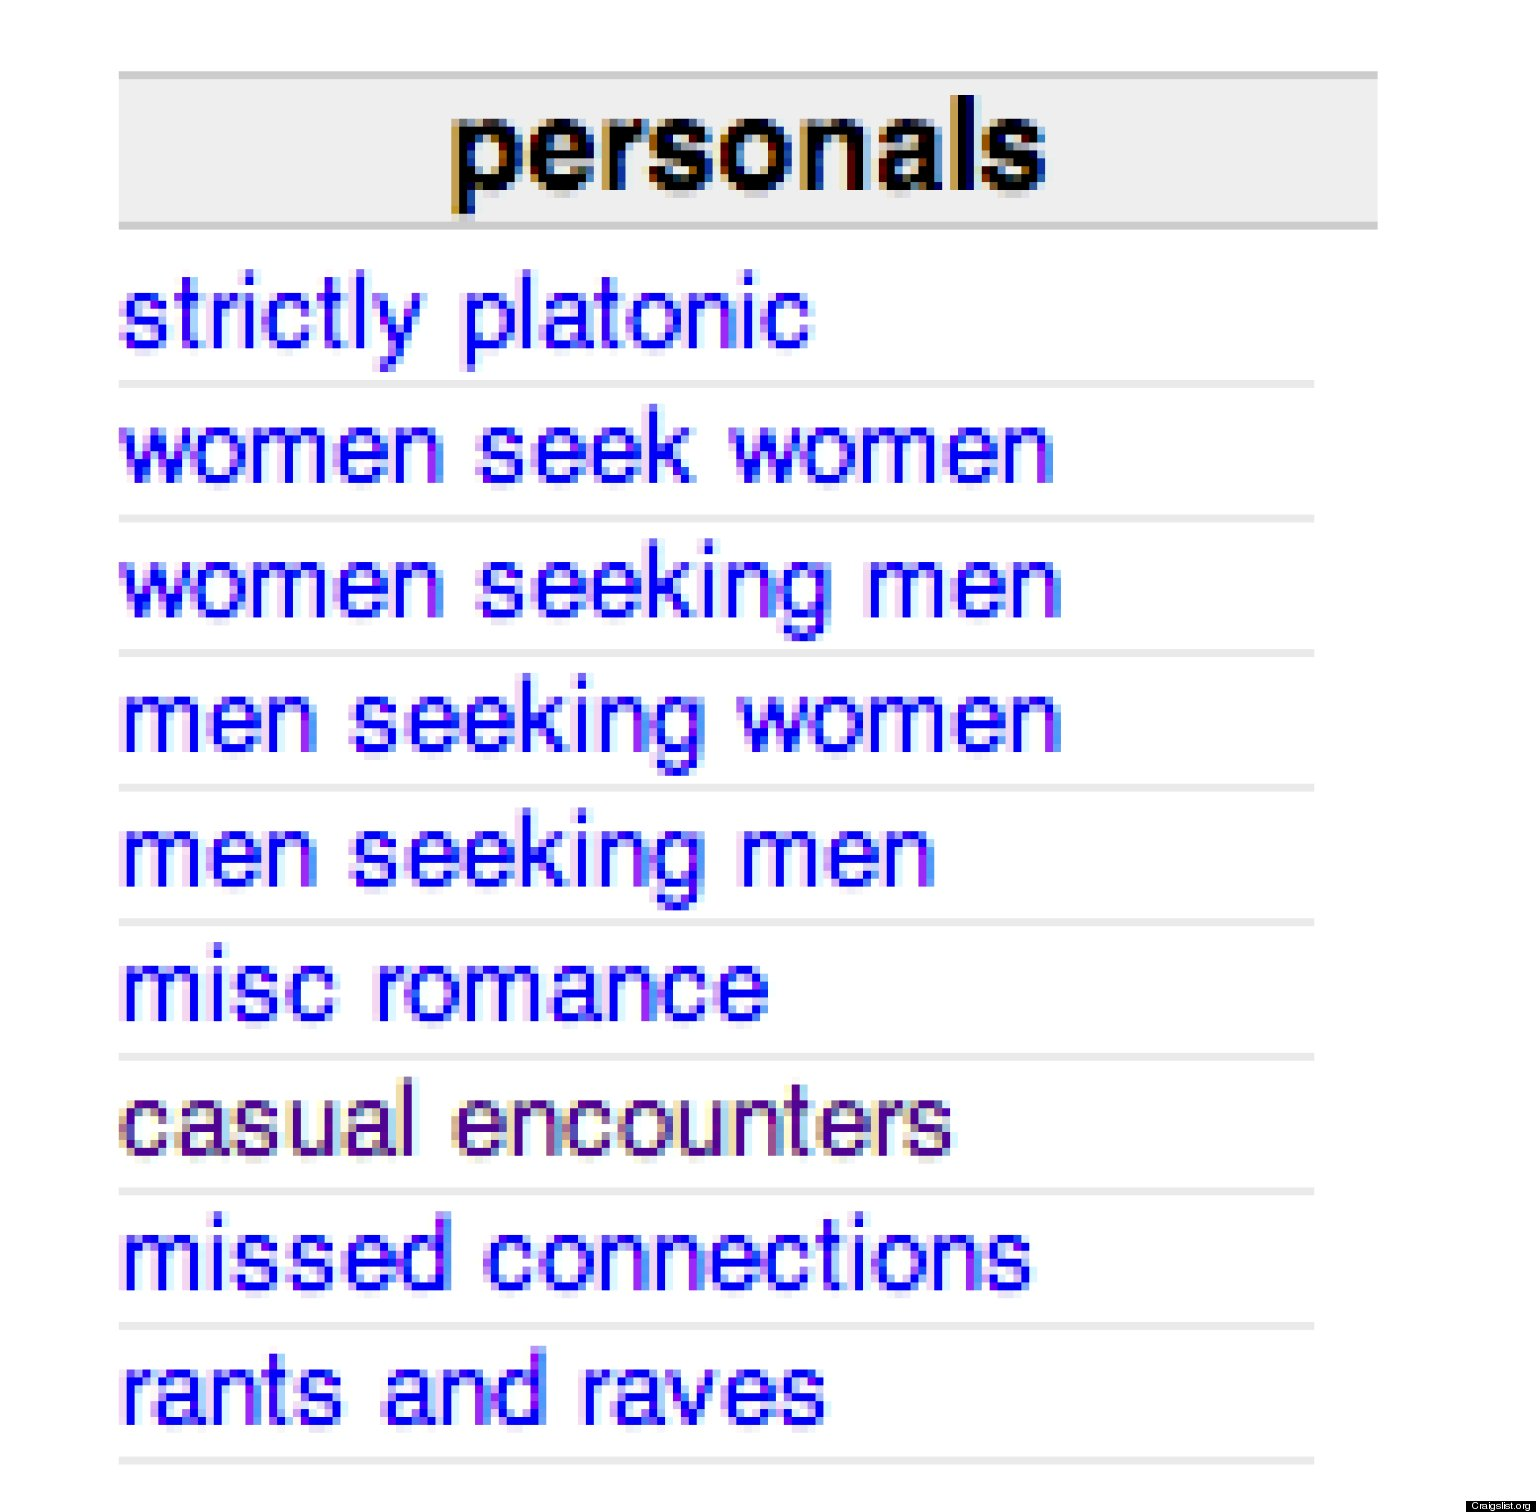 escort profiles craigslist personal encounters